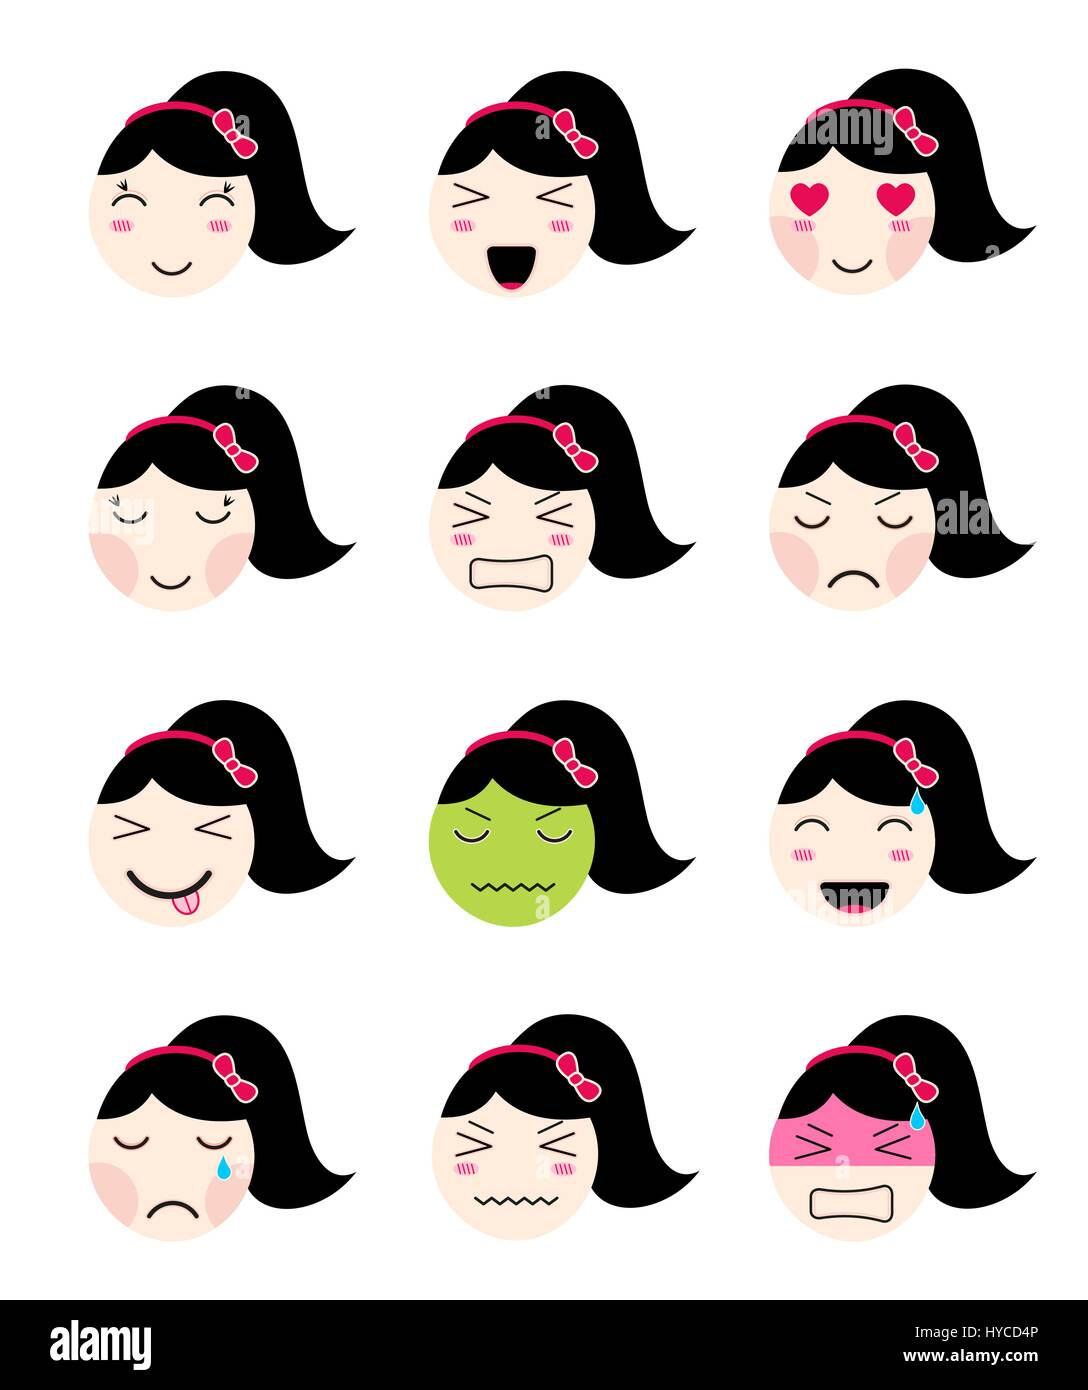 Kawaii asian girl face different moods